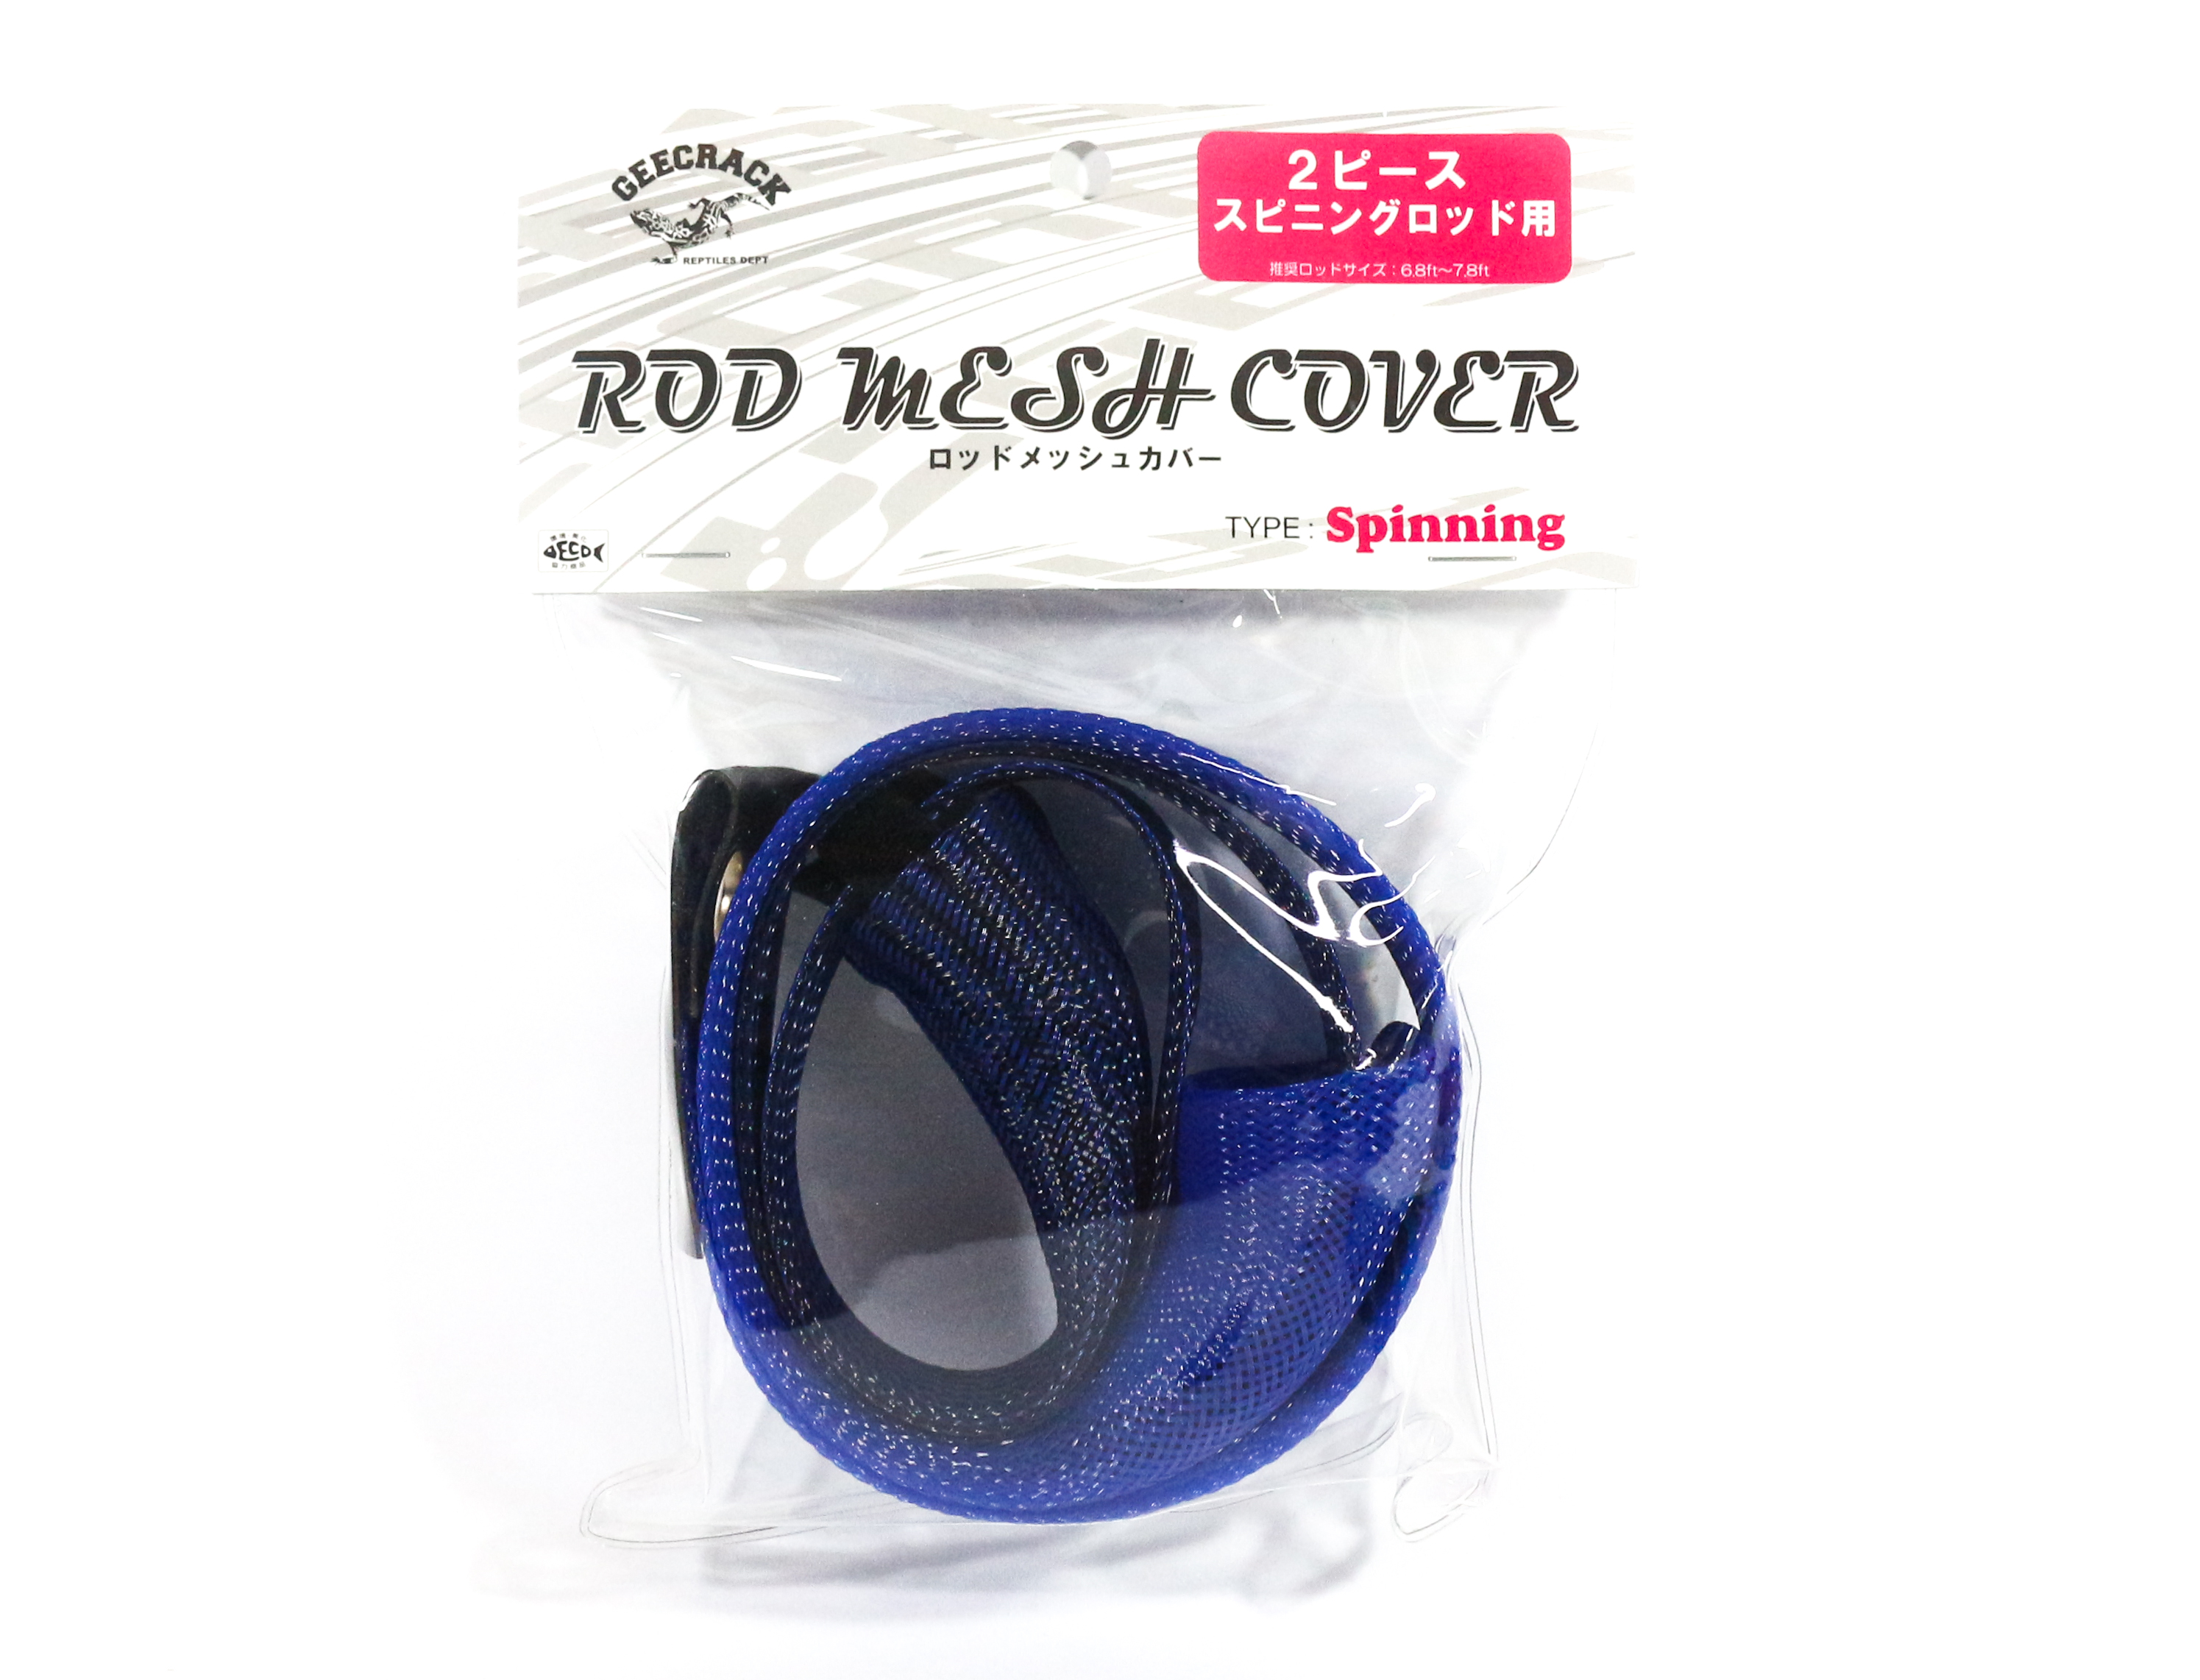 Sale Gee Crack GEE 7172 Rod Mesh Cover Spin 2 Piece 110 - 60 , 40 cm Blue (5223)